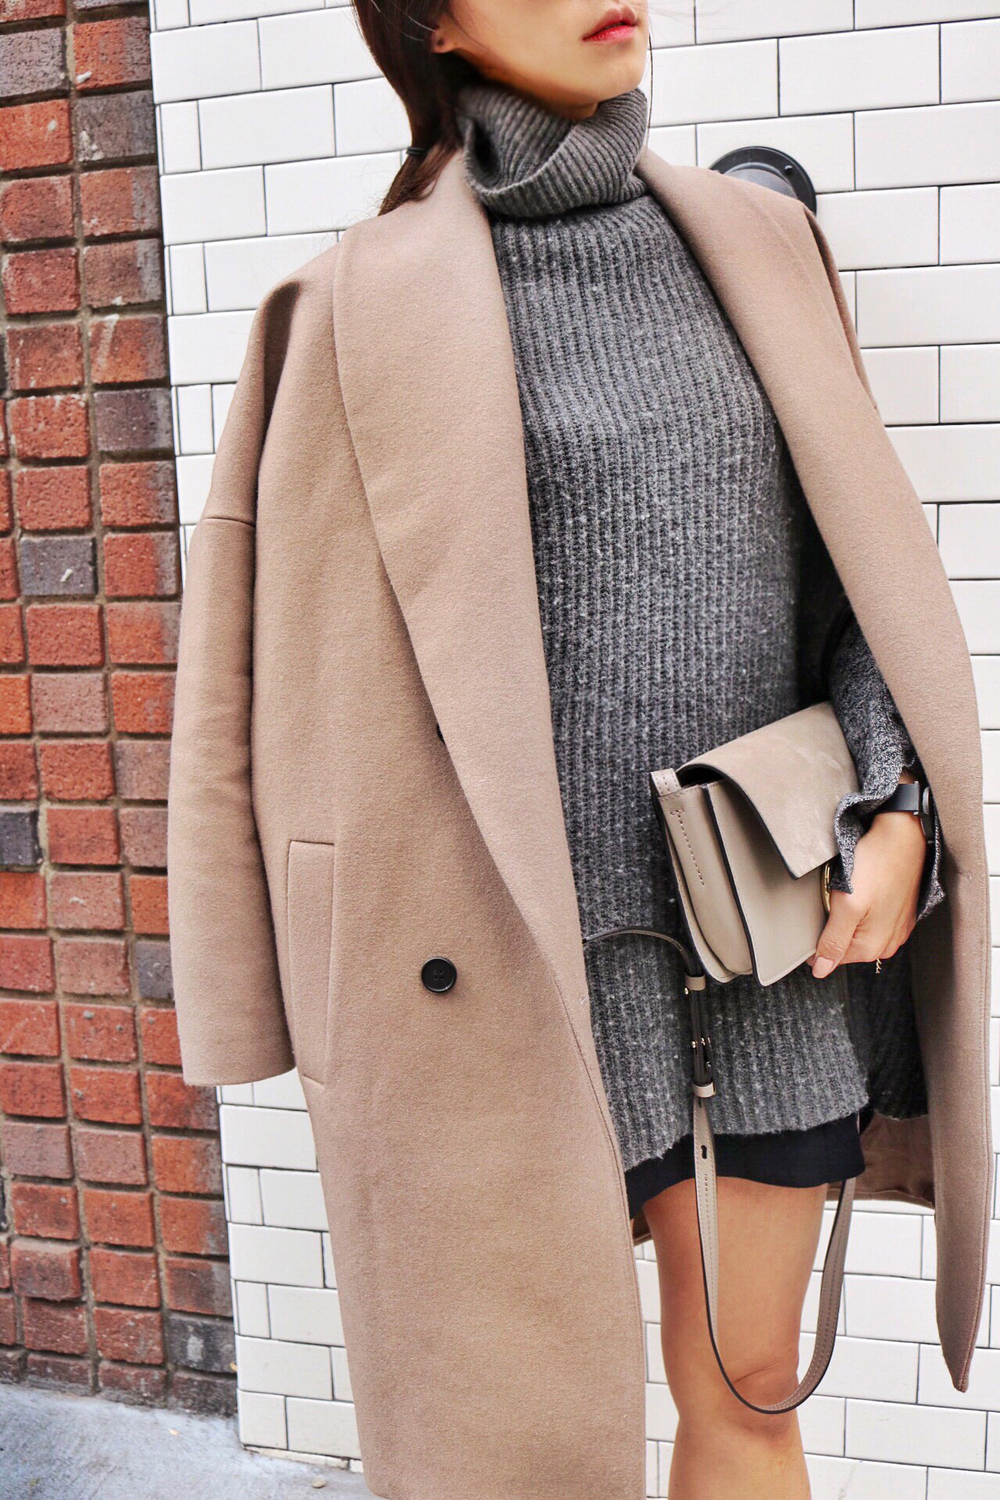 All Saints Coat , Michael Kors Sweater Poncho, Urbanoutfitters Skirt,  Chloé Bag